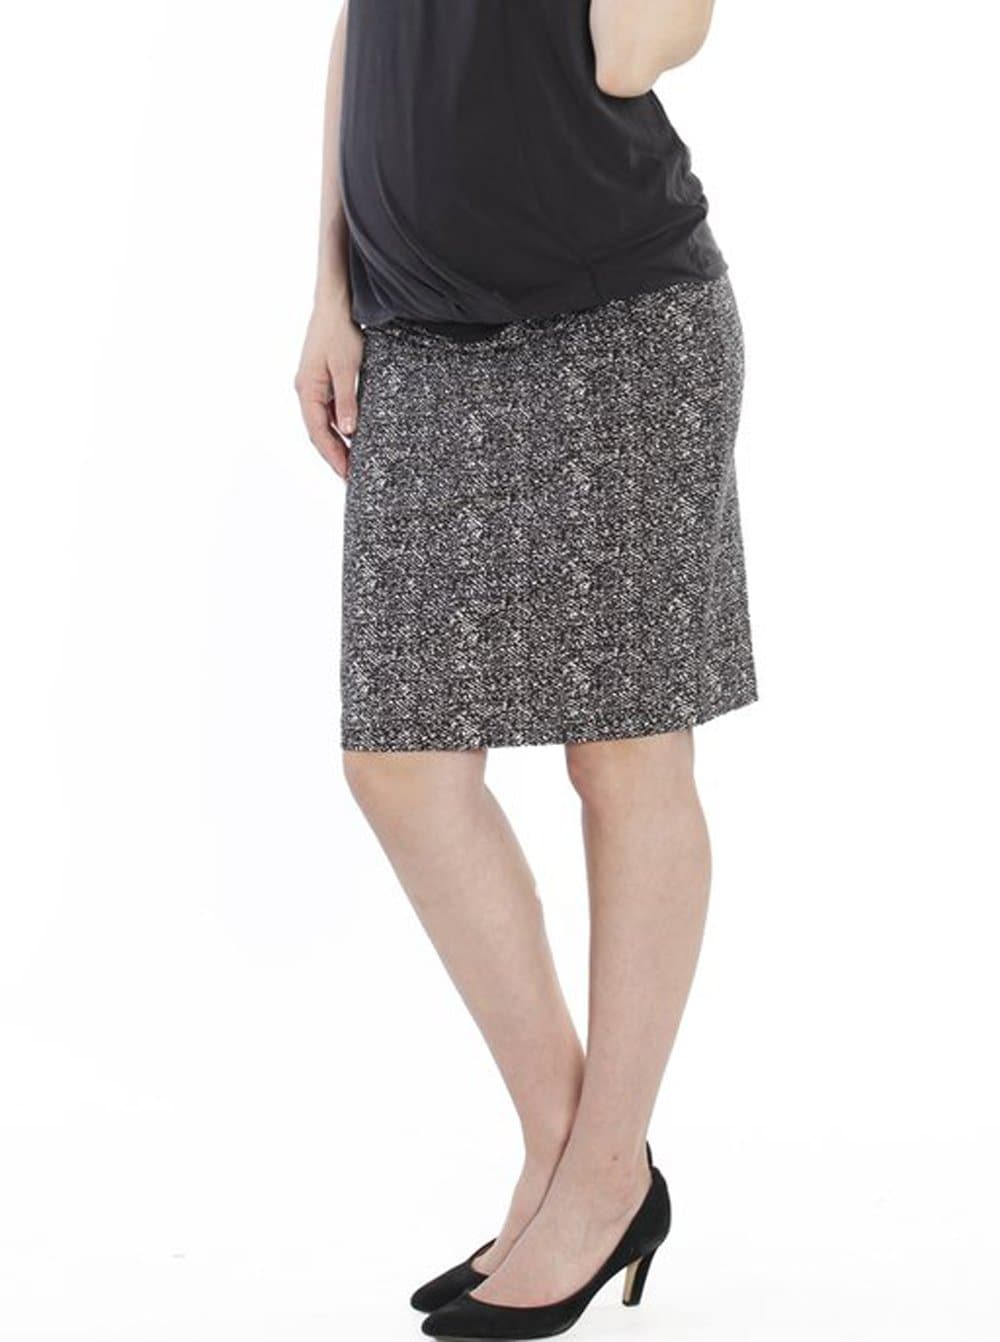 Maternity  Skirt in Black & White Print - Angel Maternity - Maternity clothes - shop online